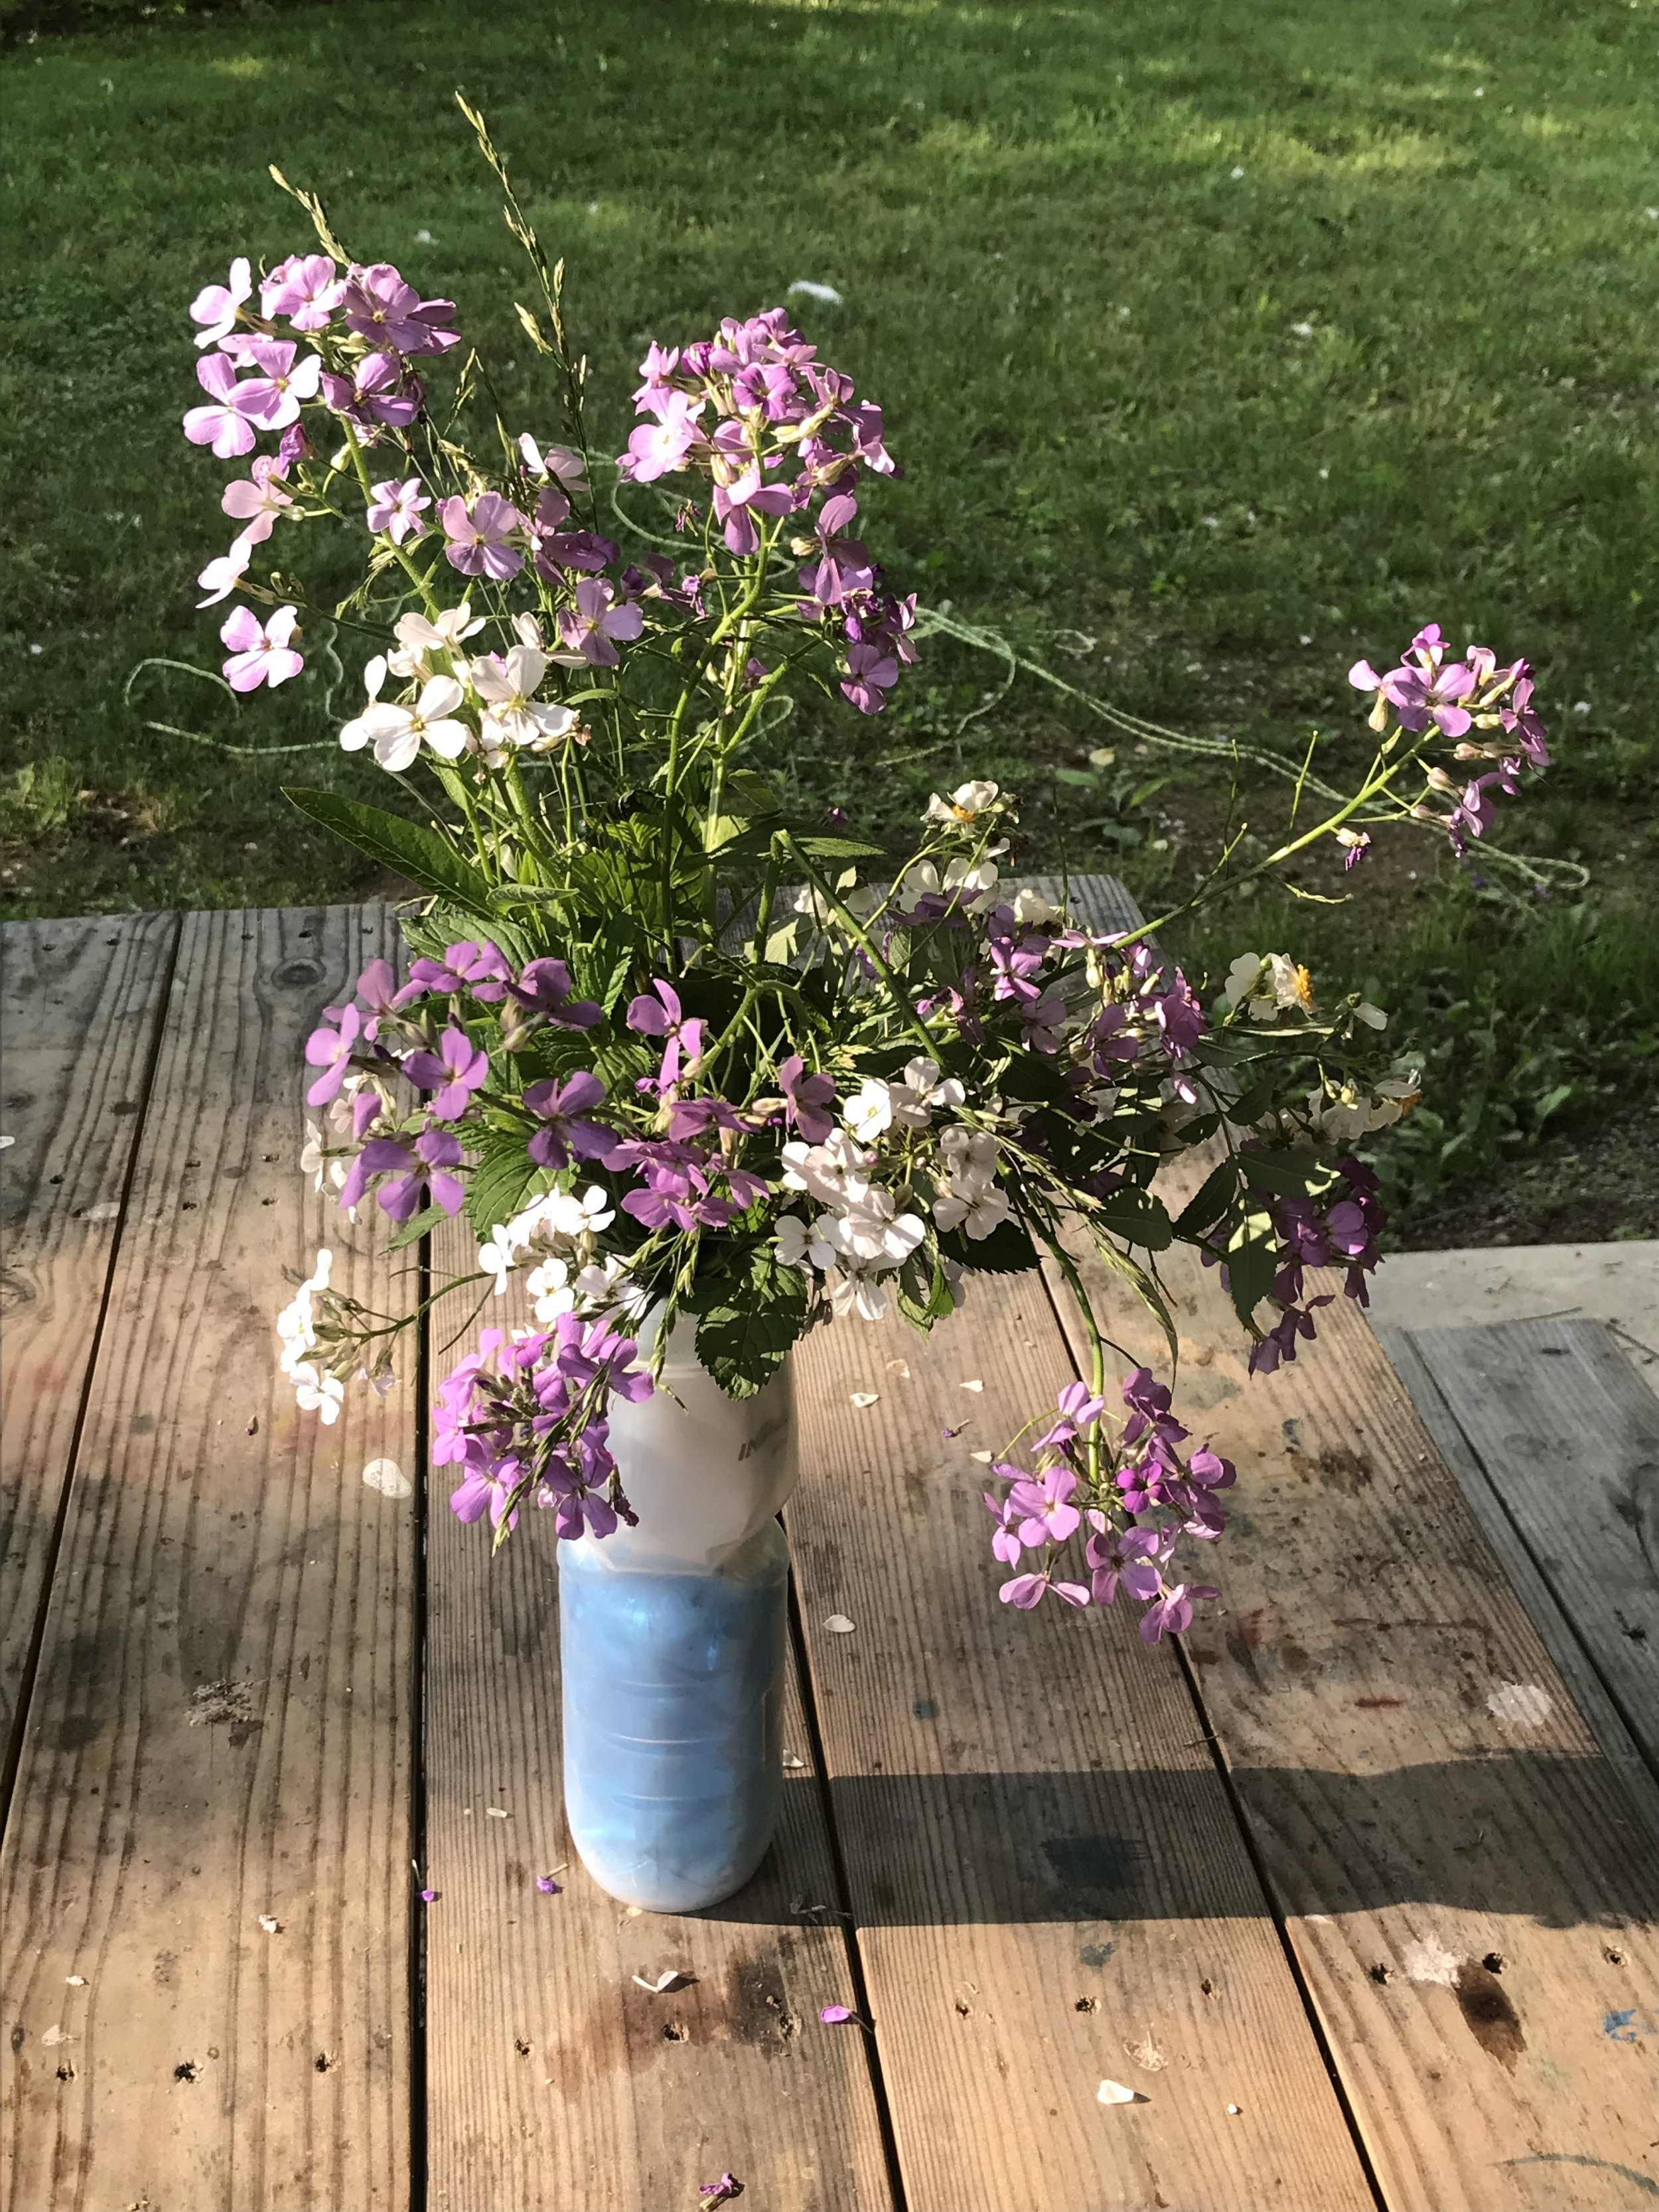 Look at the flowers that Avery picked at a campground. We enjoyed them at our dinner table that evening.